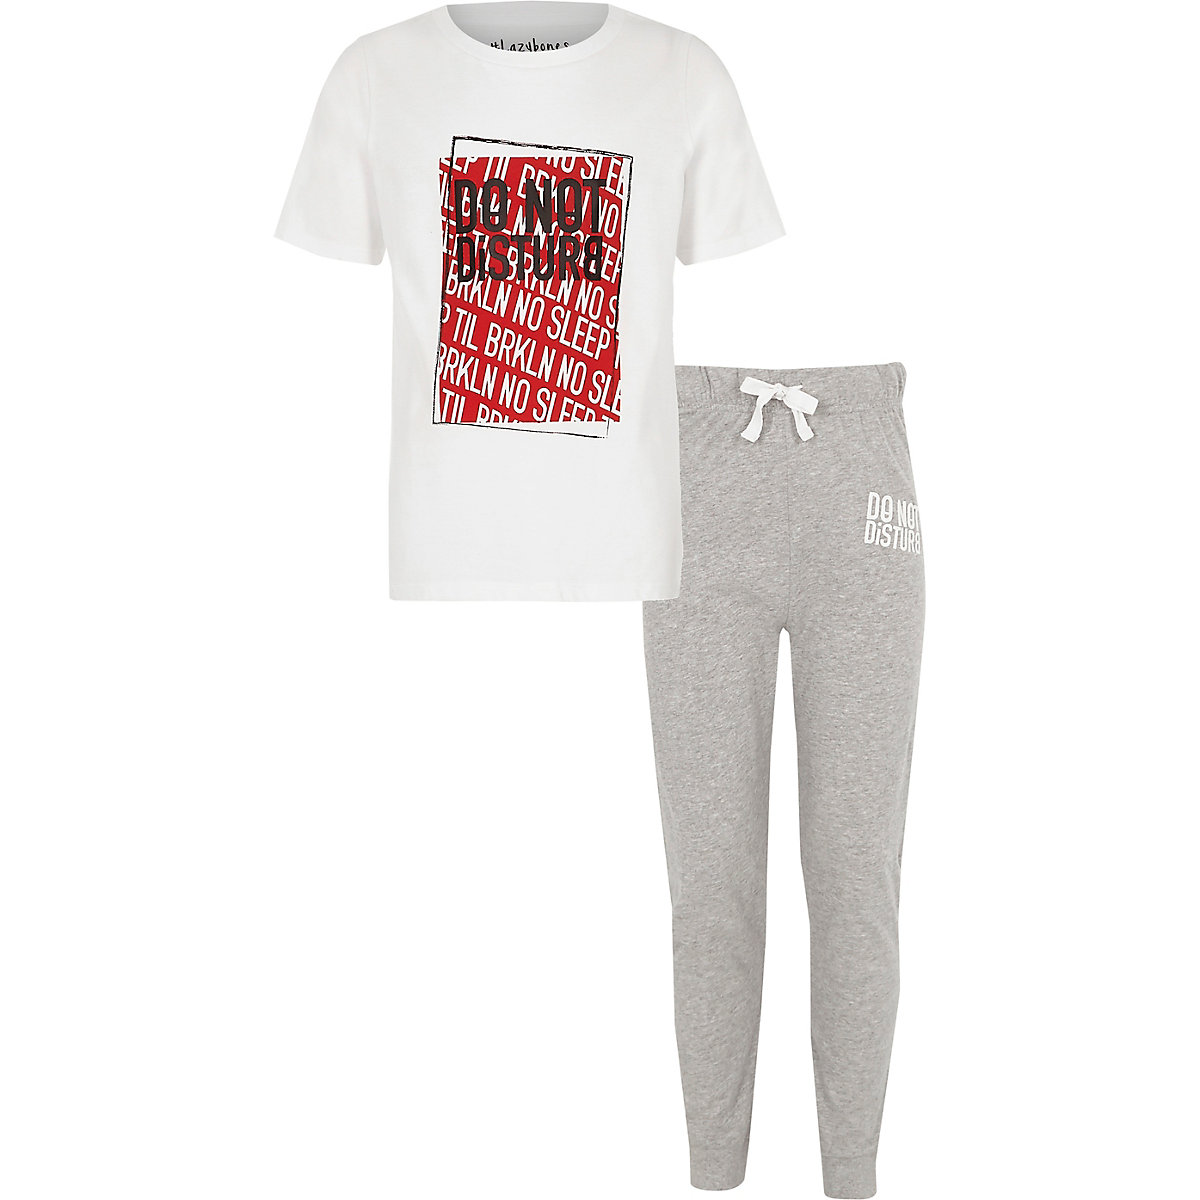 Boys white 'do not disturb' pyjama set